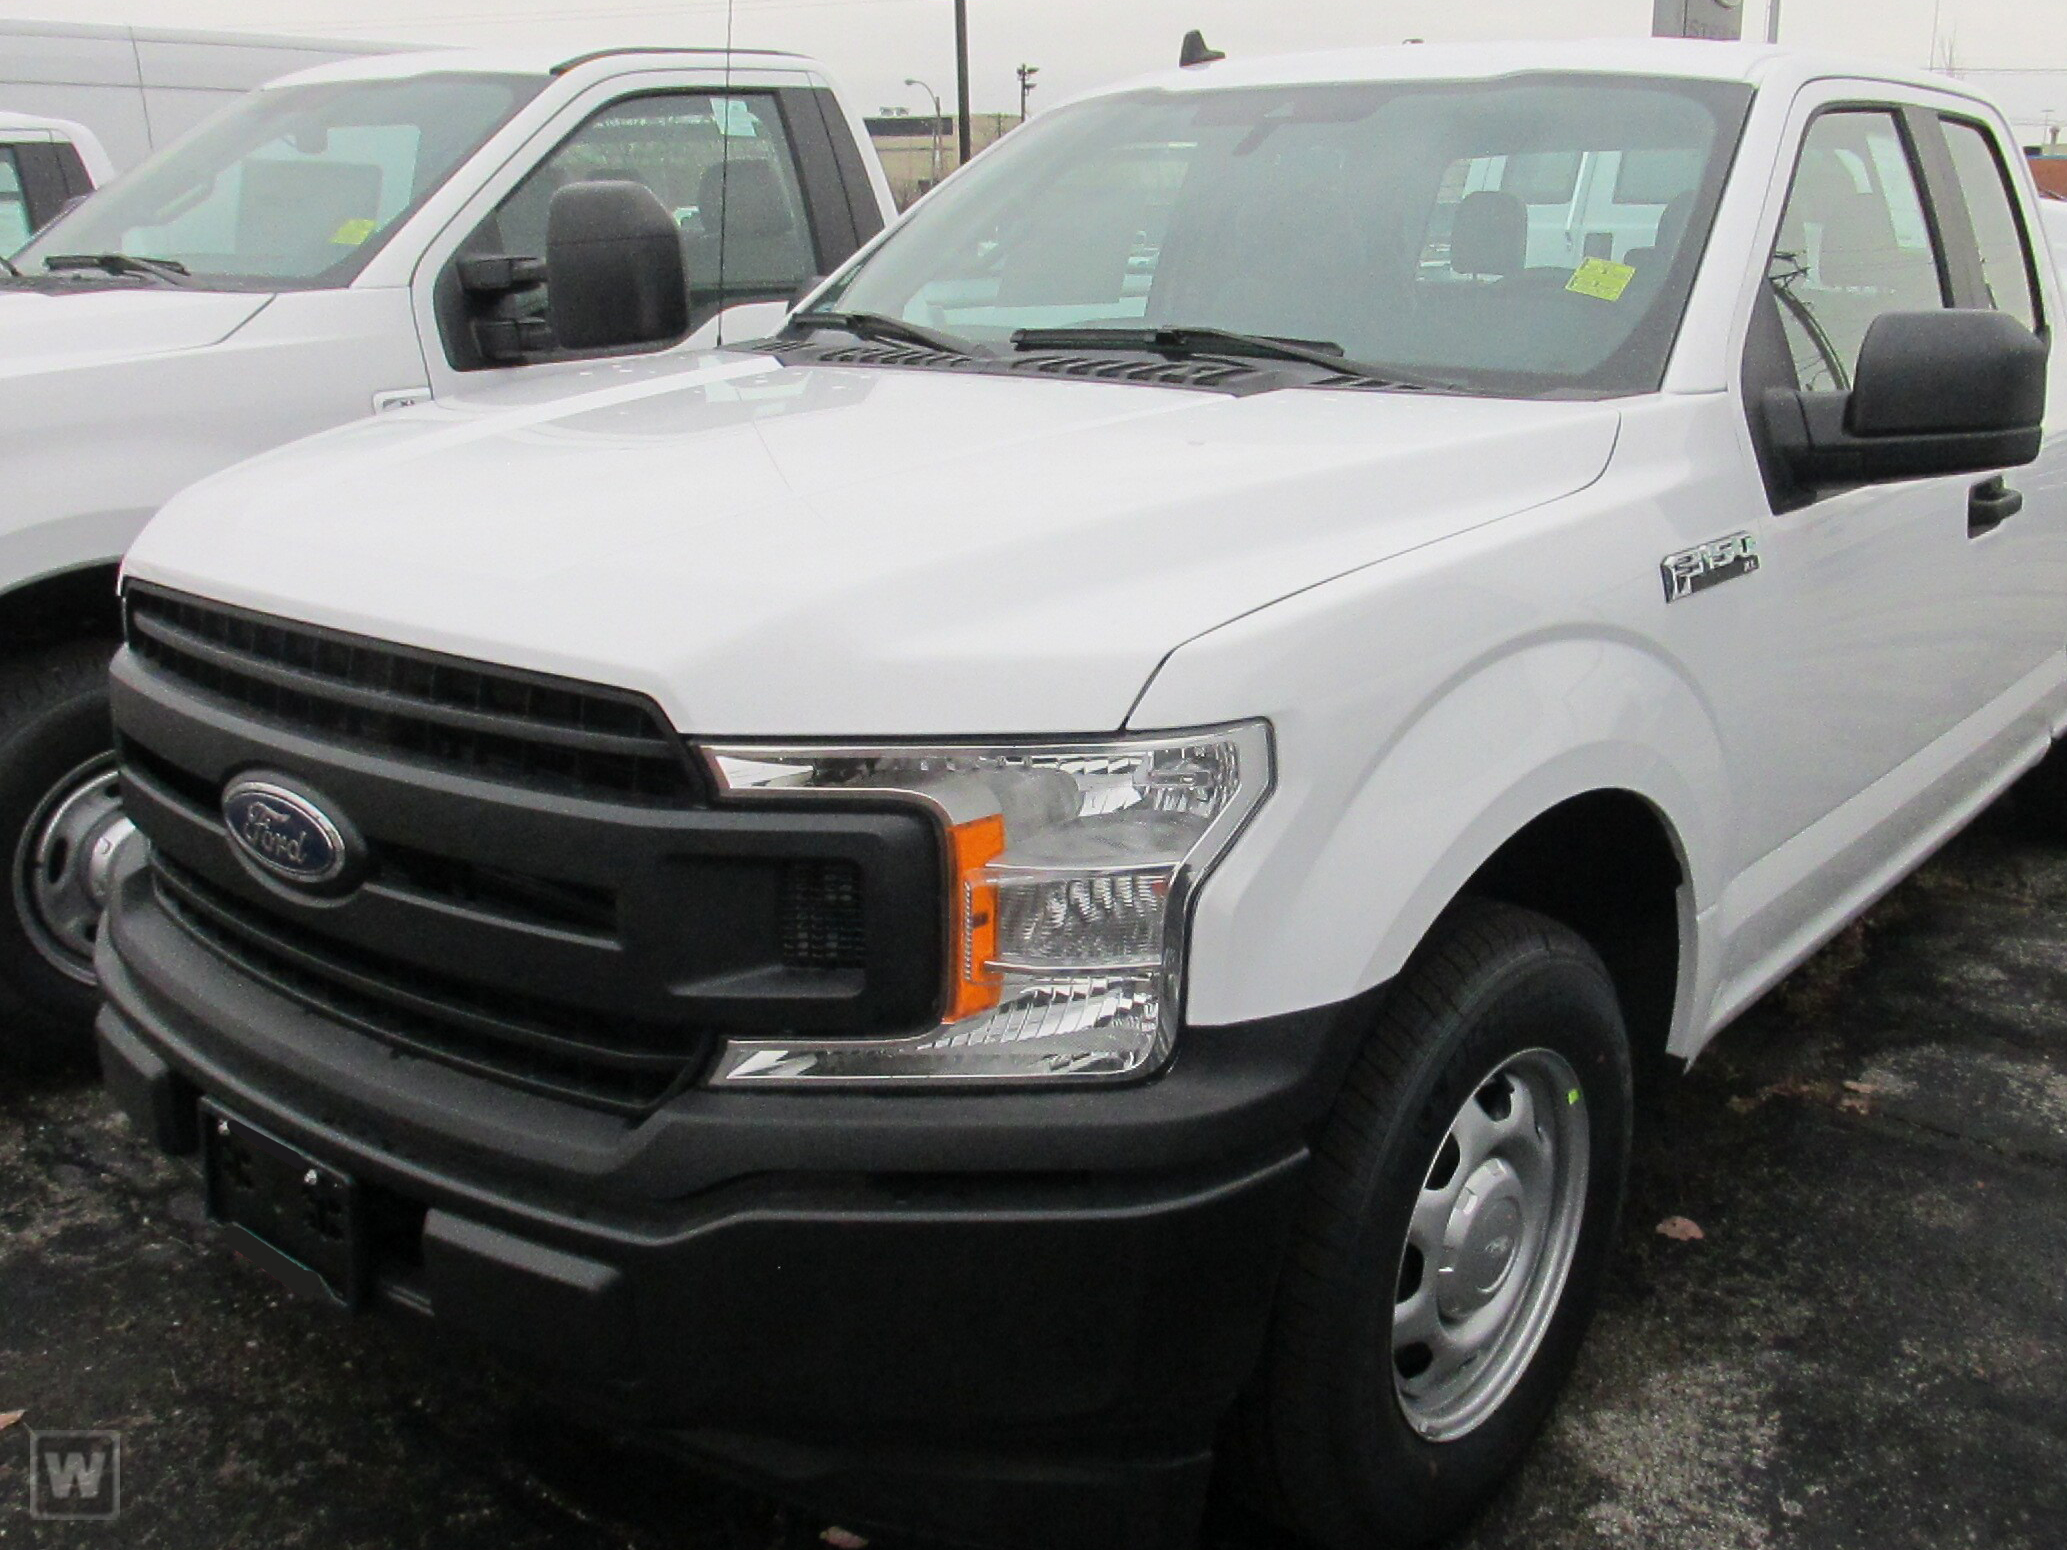 2020 Ford F-150 Super Cab 4x4, Pickup #GC39405 - photo 1